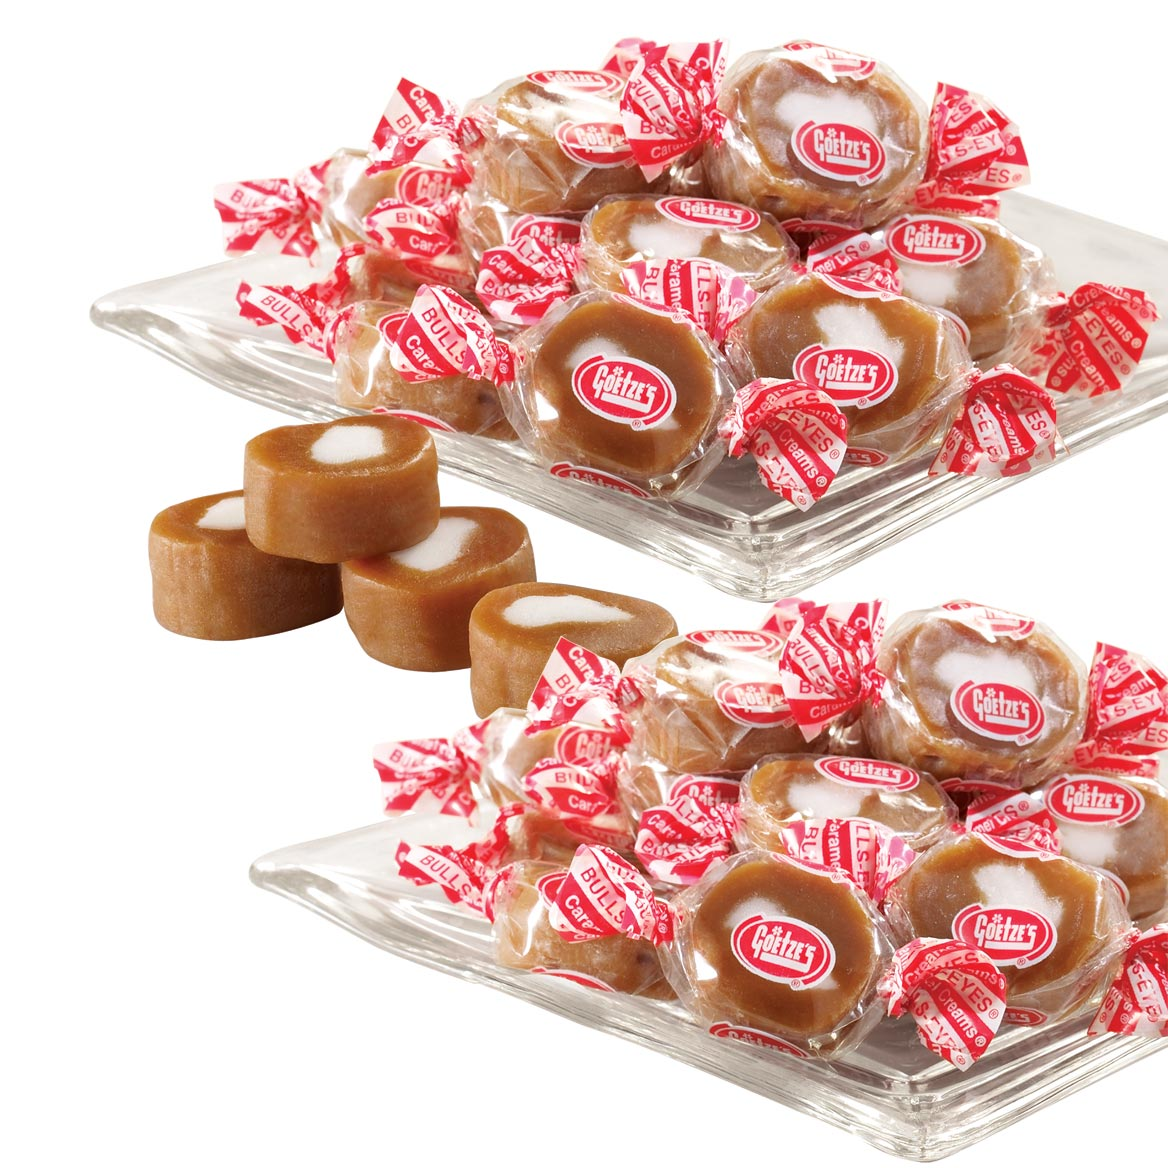 Caramel Creams® Candy, 12.5 oz., Set of 2-359366